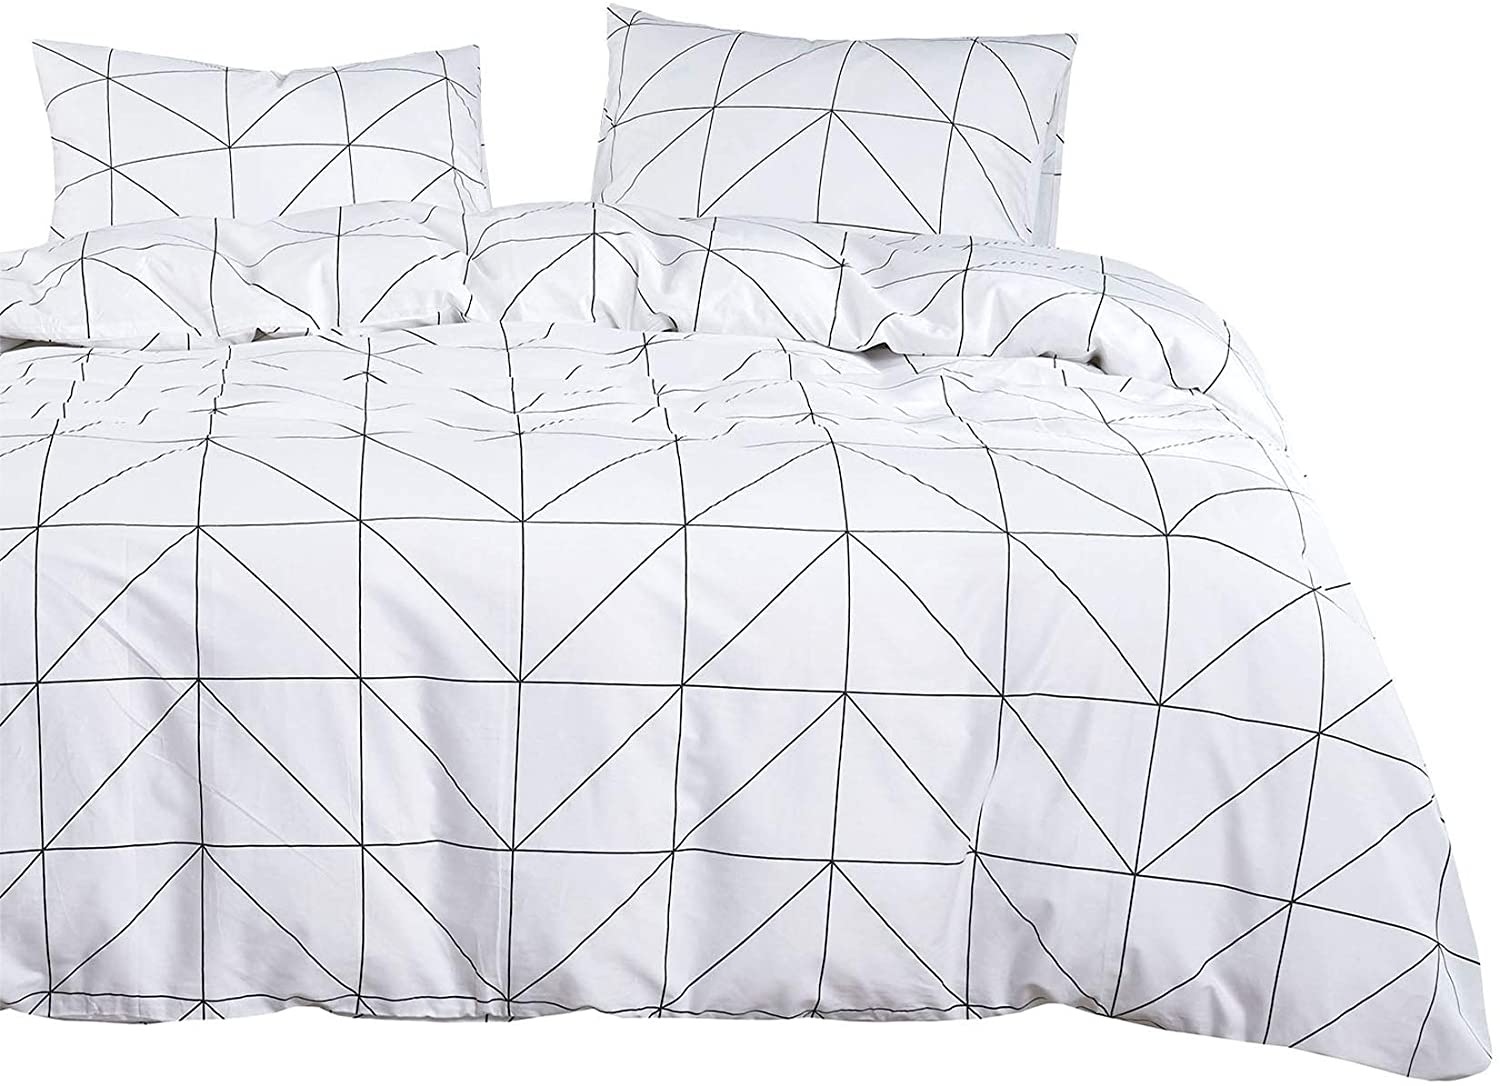 Wake In Cloud Geometric Duvet Cover Set 100 Cotton Bedding White Black Geometric Modern Pattern Printed Zipper Closure 3pcs Queen Size Amazon Ca Home Kitchen